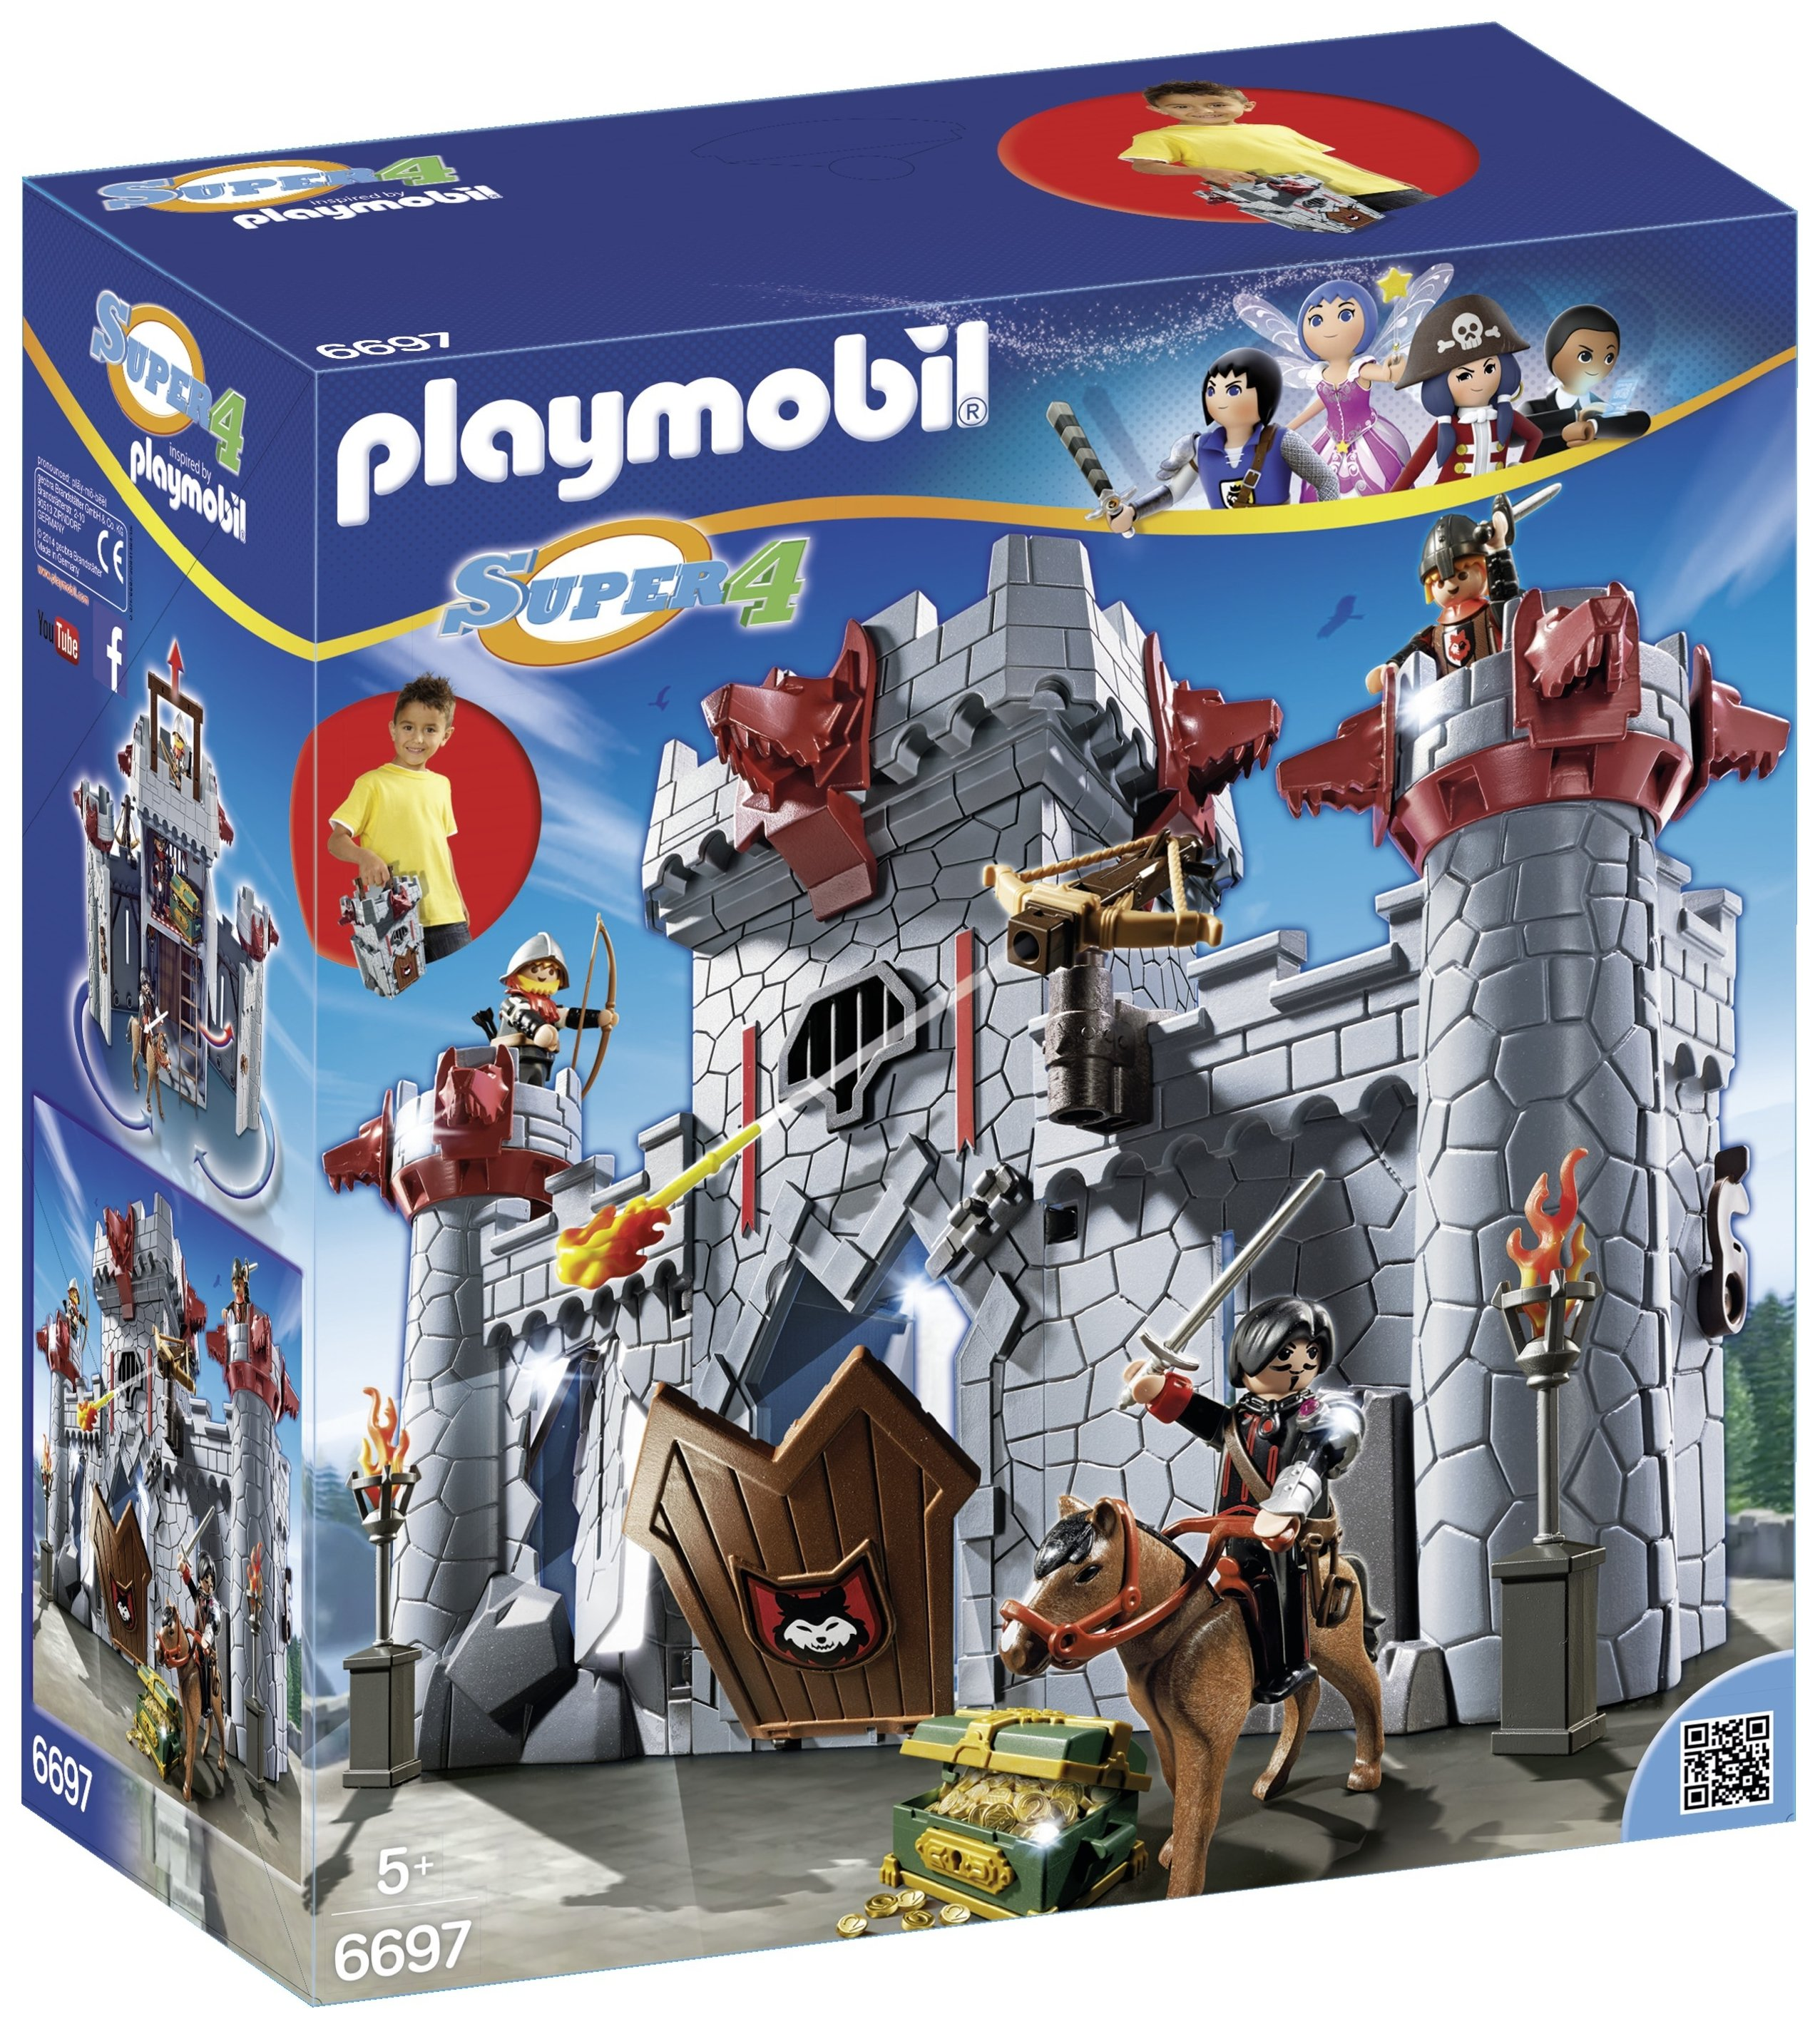 Playmobil   6697 Super 4 Take Along Black Baron's Castle Set.